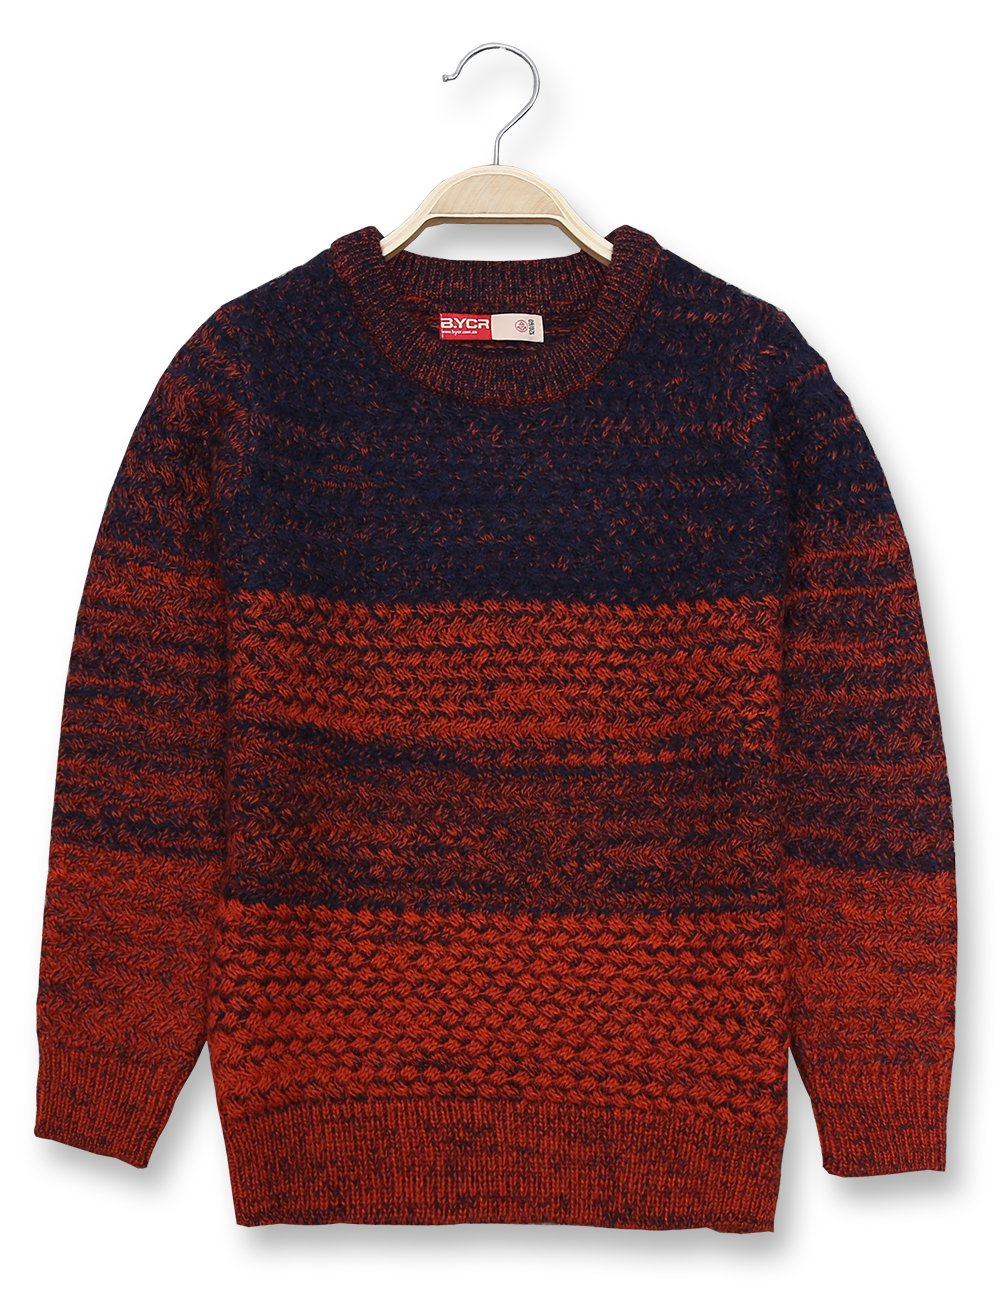 BYCR Boys' Fashion Warm Pullover Crew Neck Knitted Sweater Age 4-16 Years